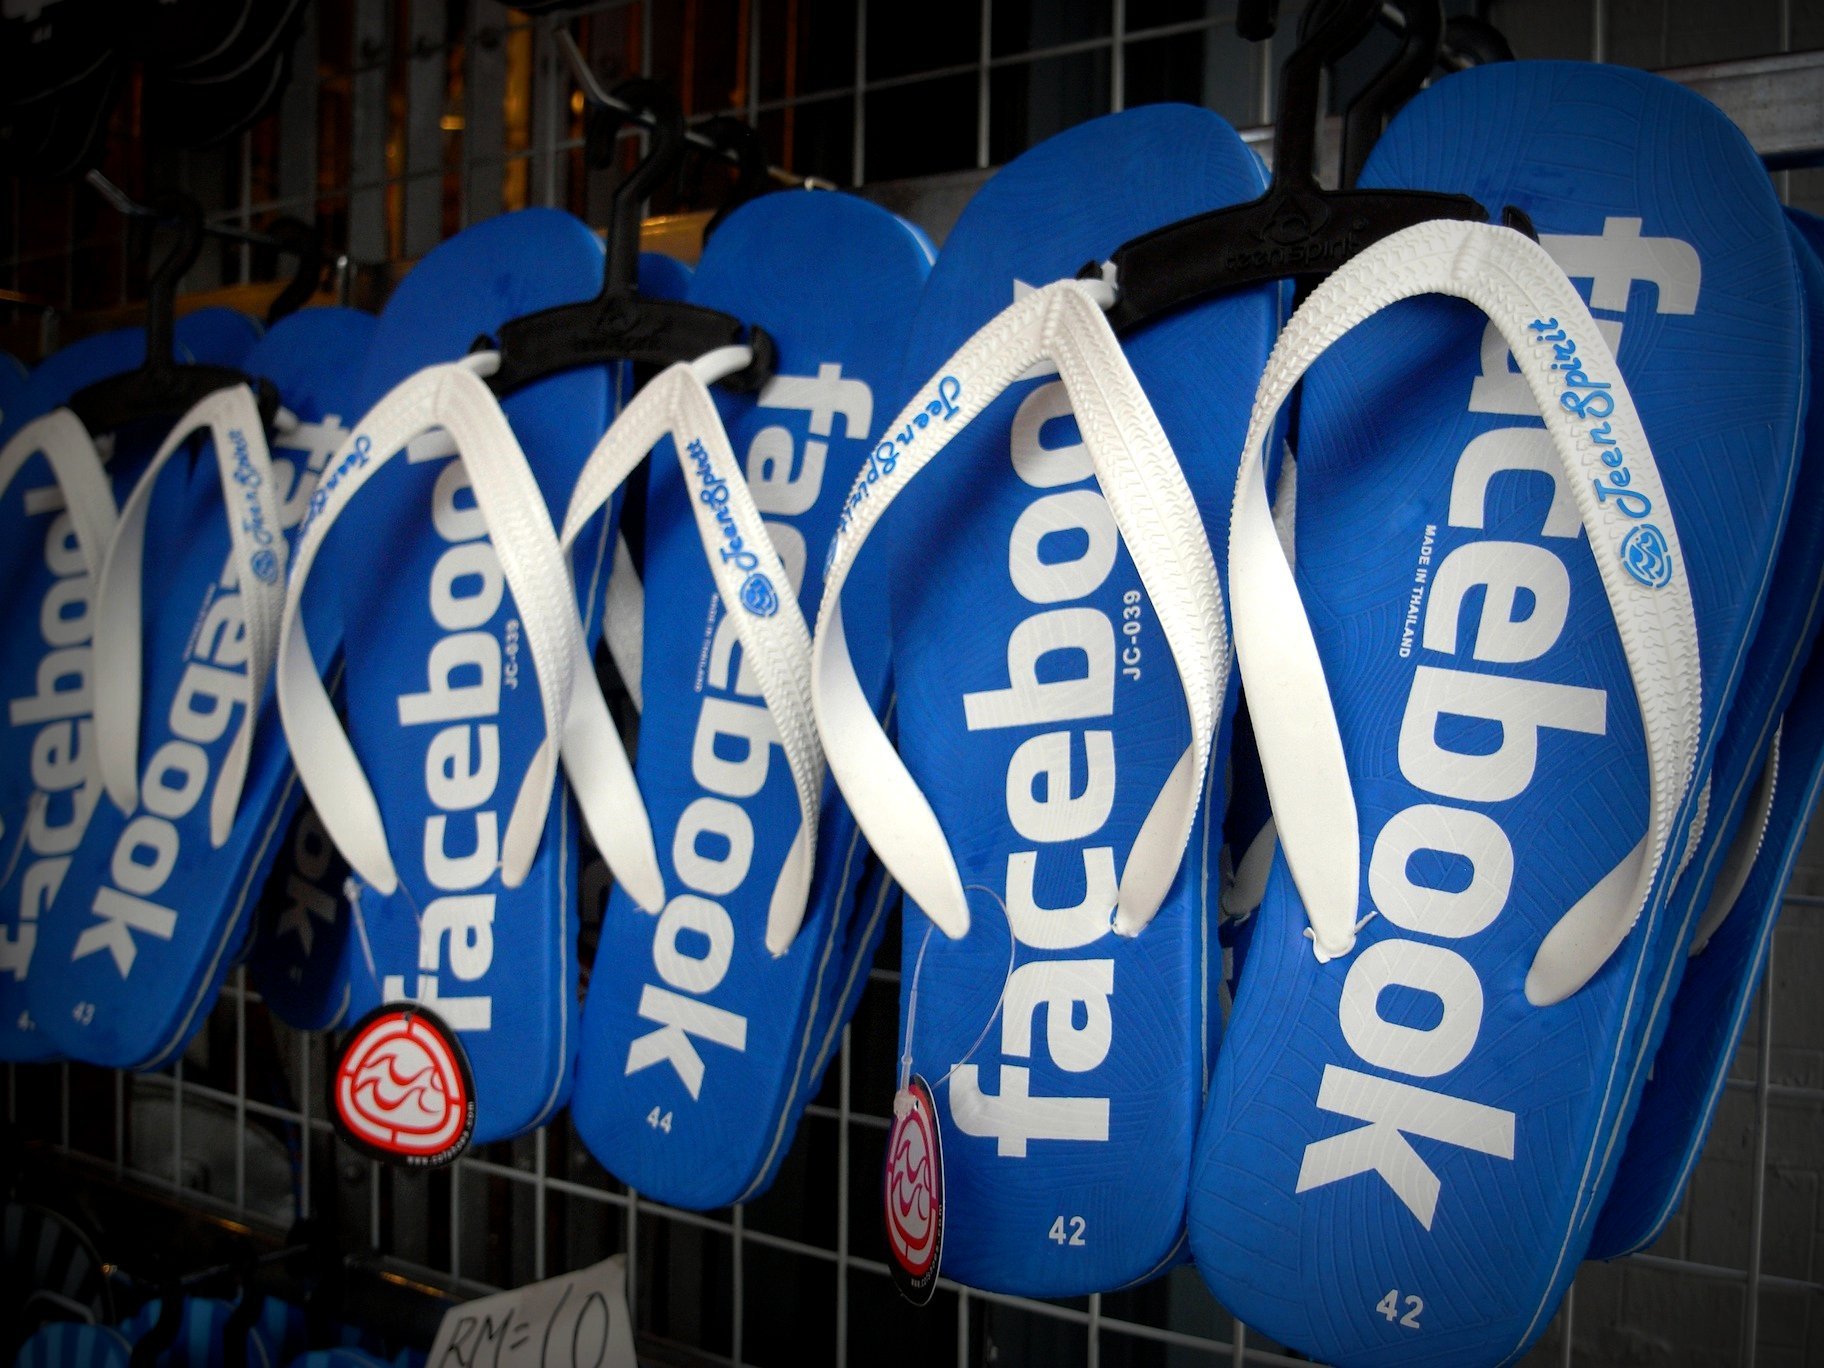 Facebook flipflop. Source: Momo, Flickr